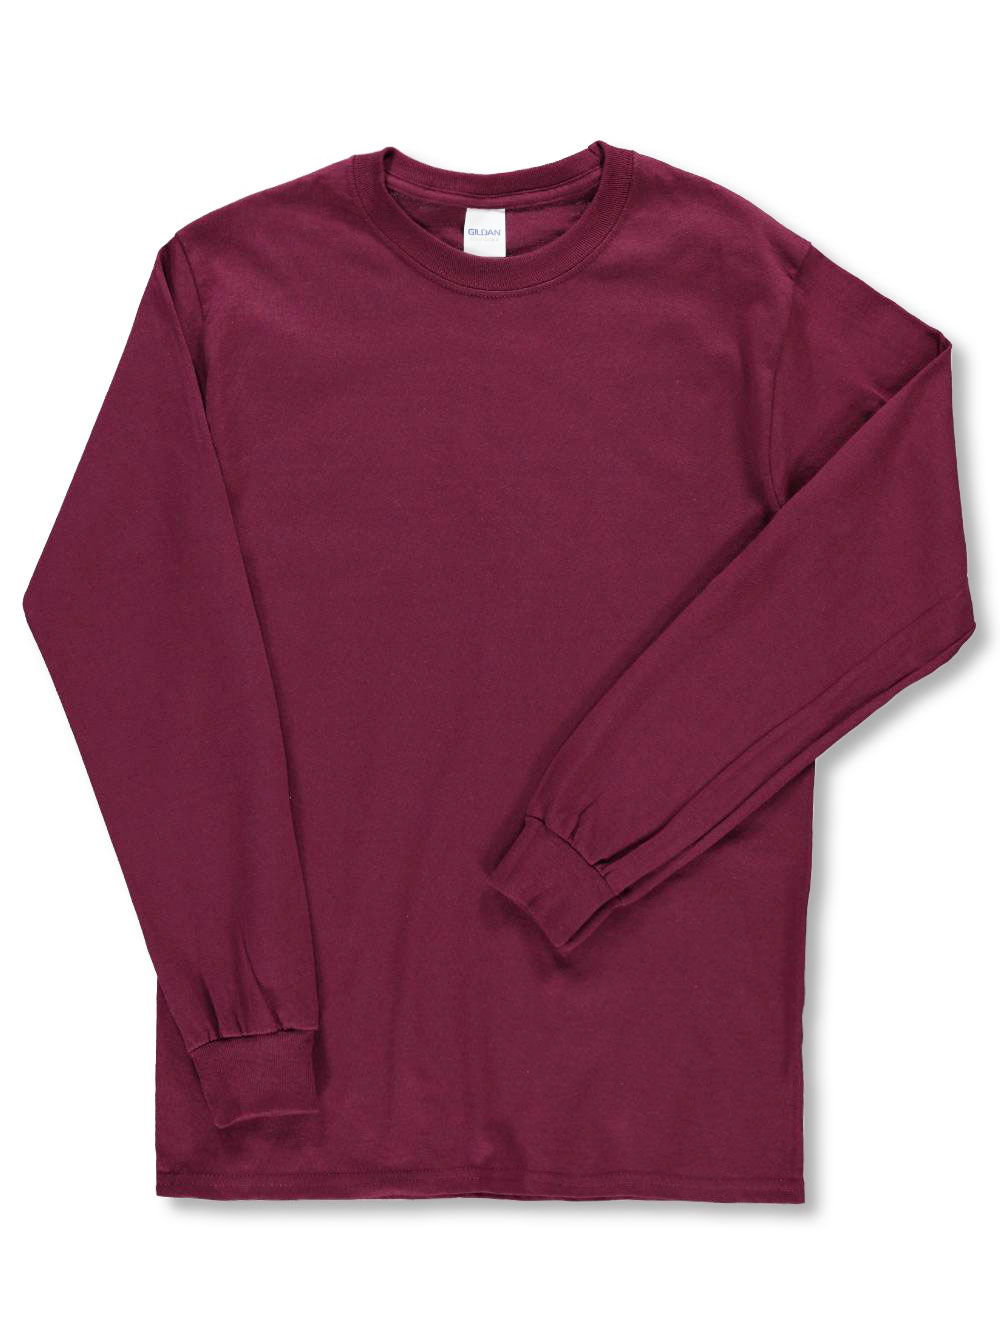 Boys Burgundy Tops